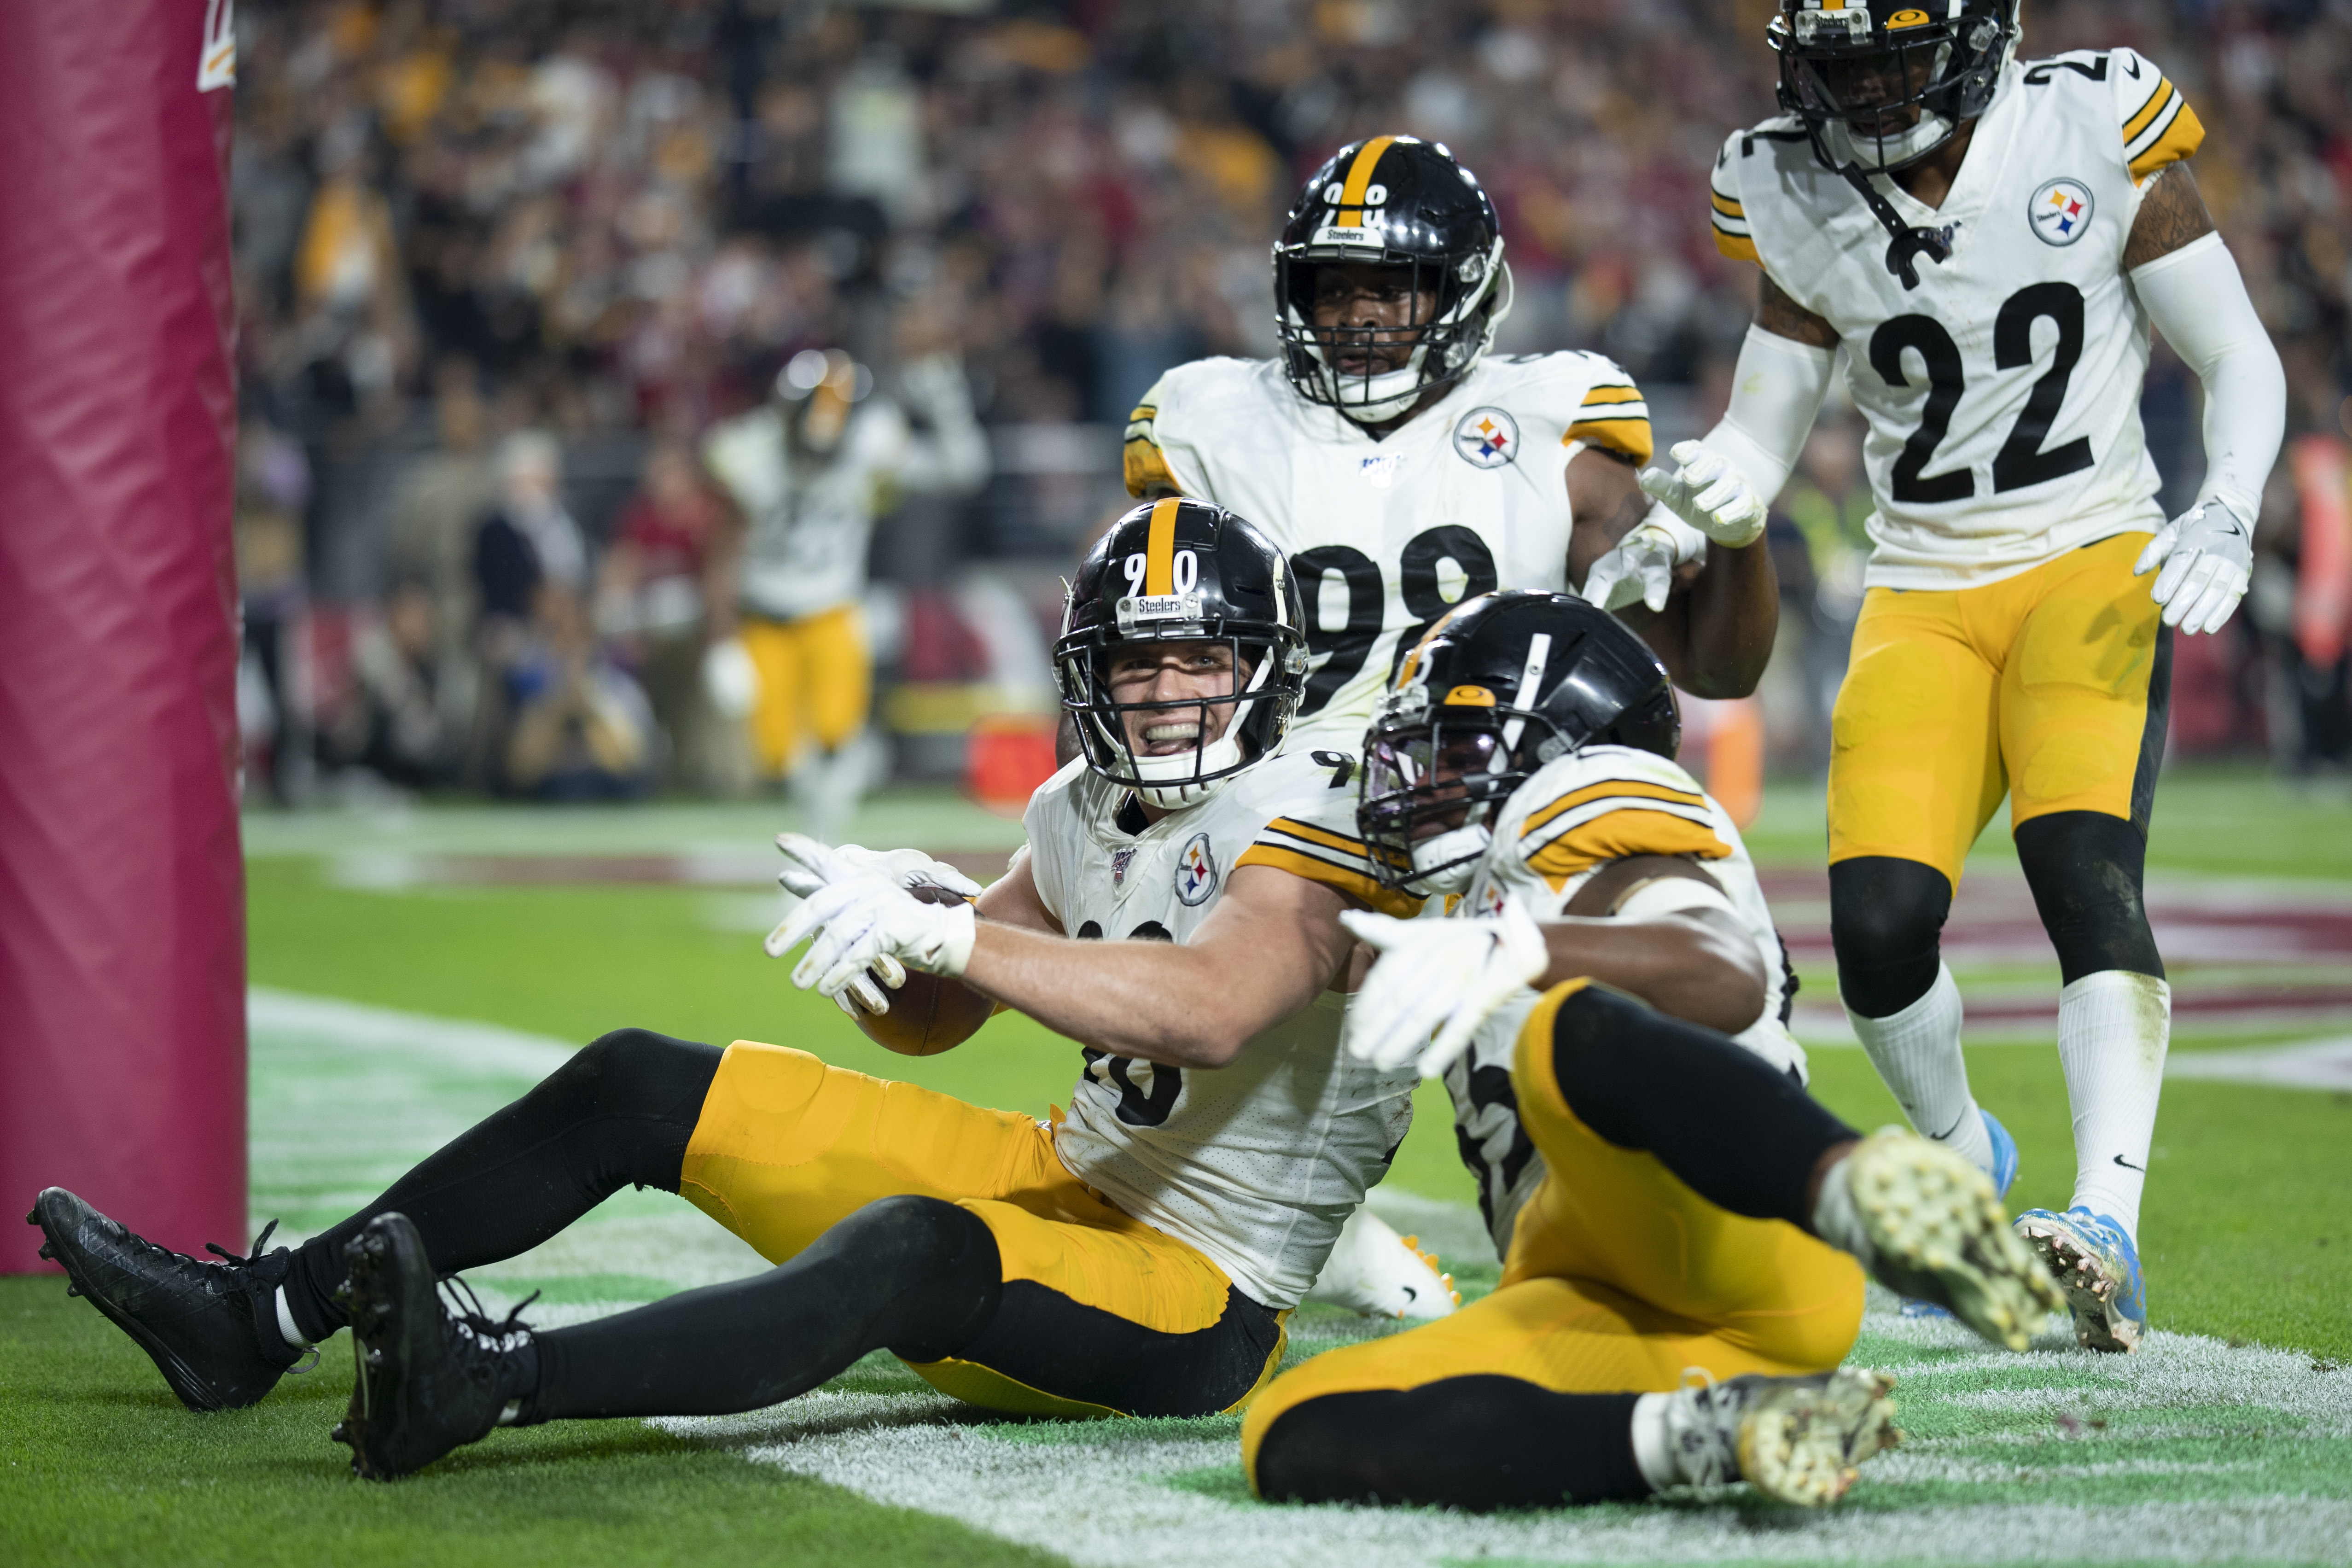 Outside linebacker T.J. Watt of the Pittsburgh Steelers celebrates with teammates